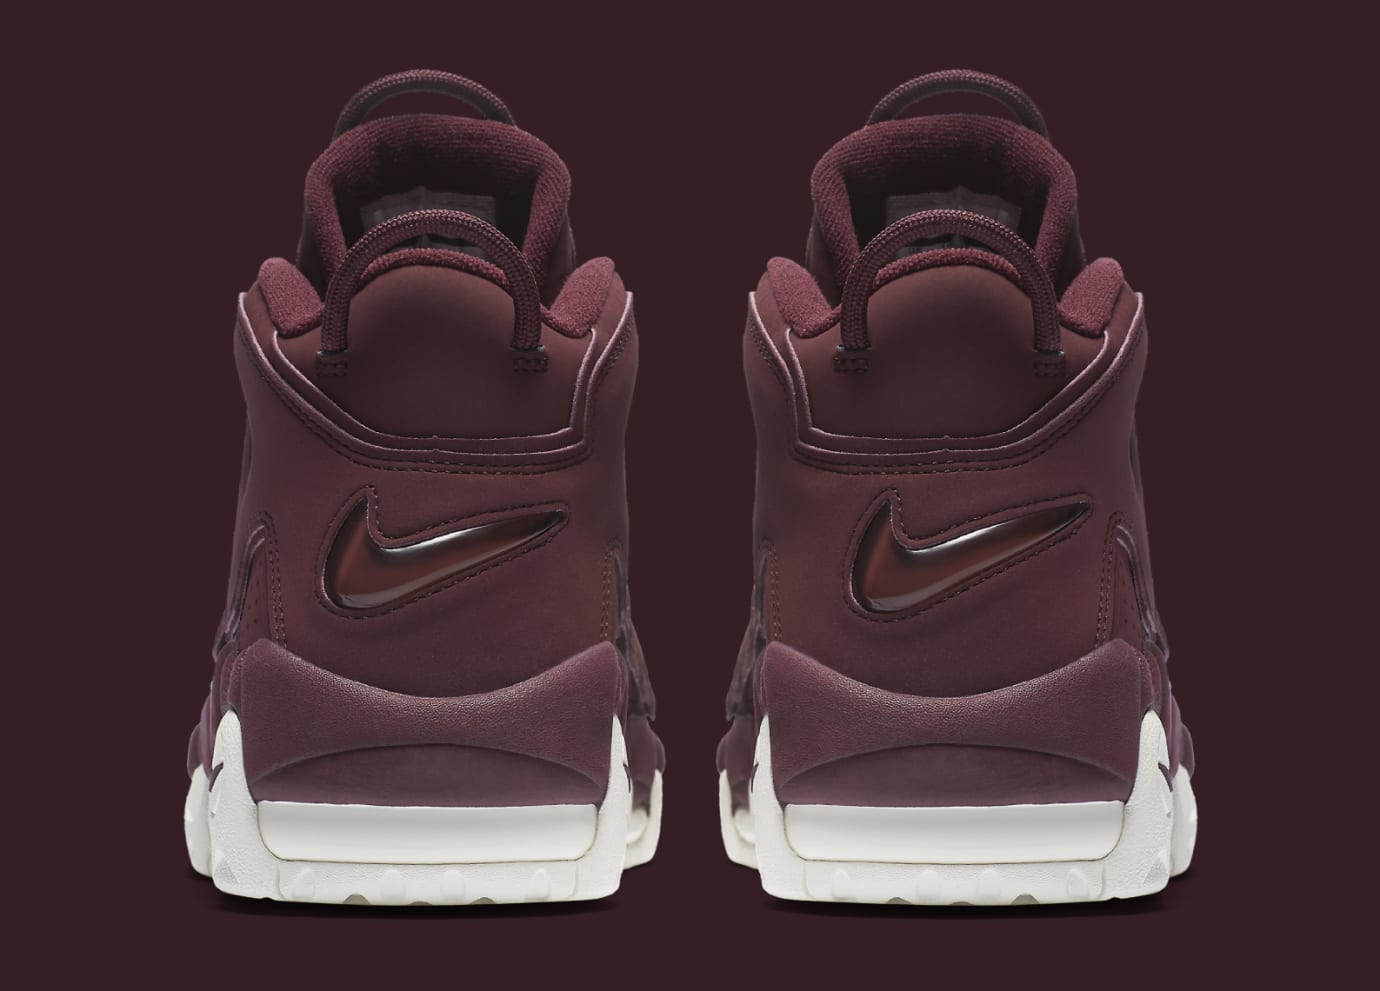 best website 6111f 0069a Image via Nike Bordeaux Nike Air More Uptempo 912949-600 Heel